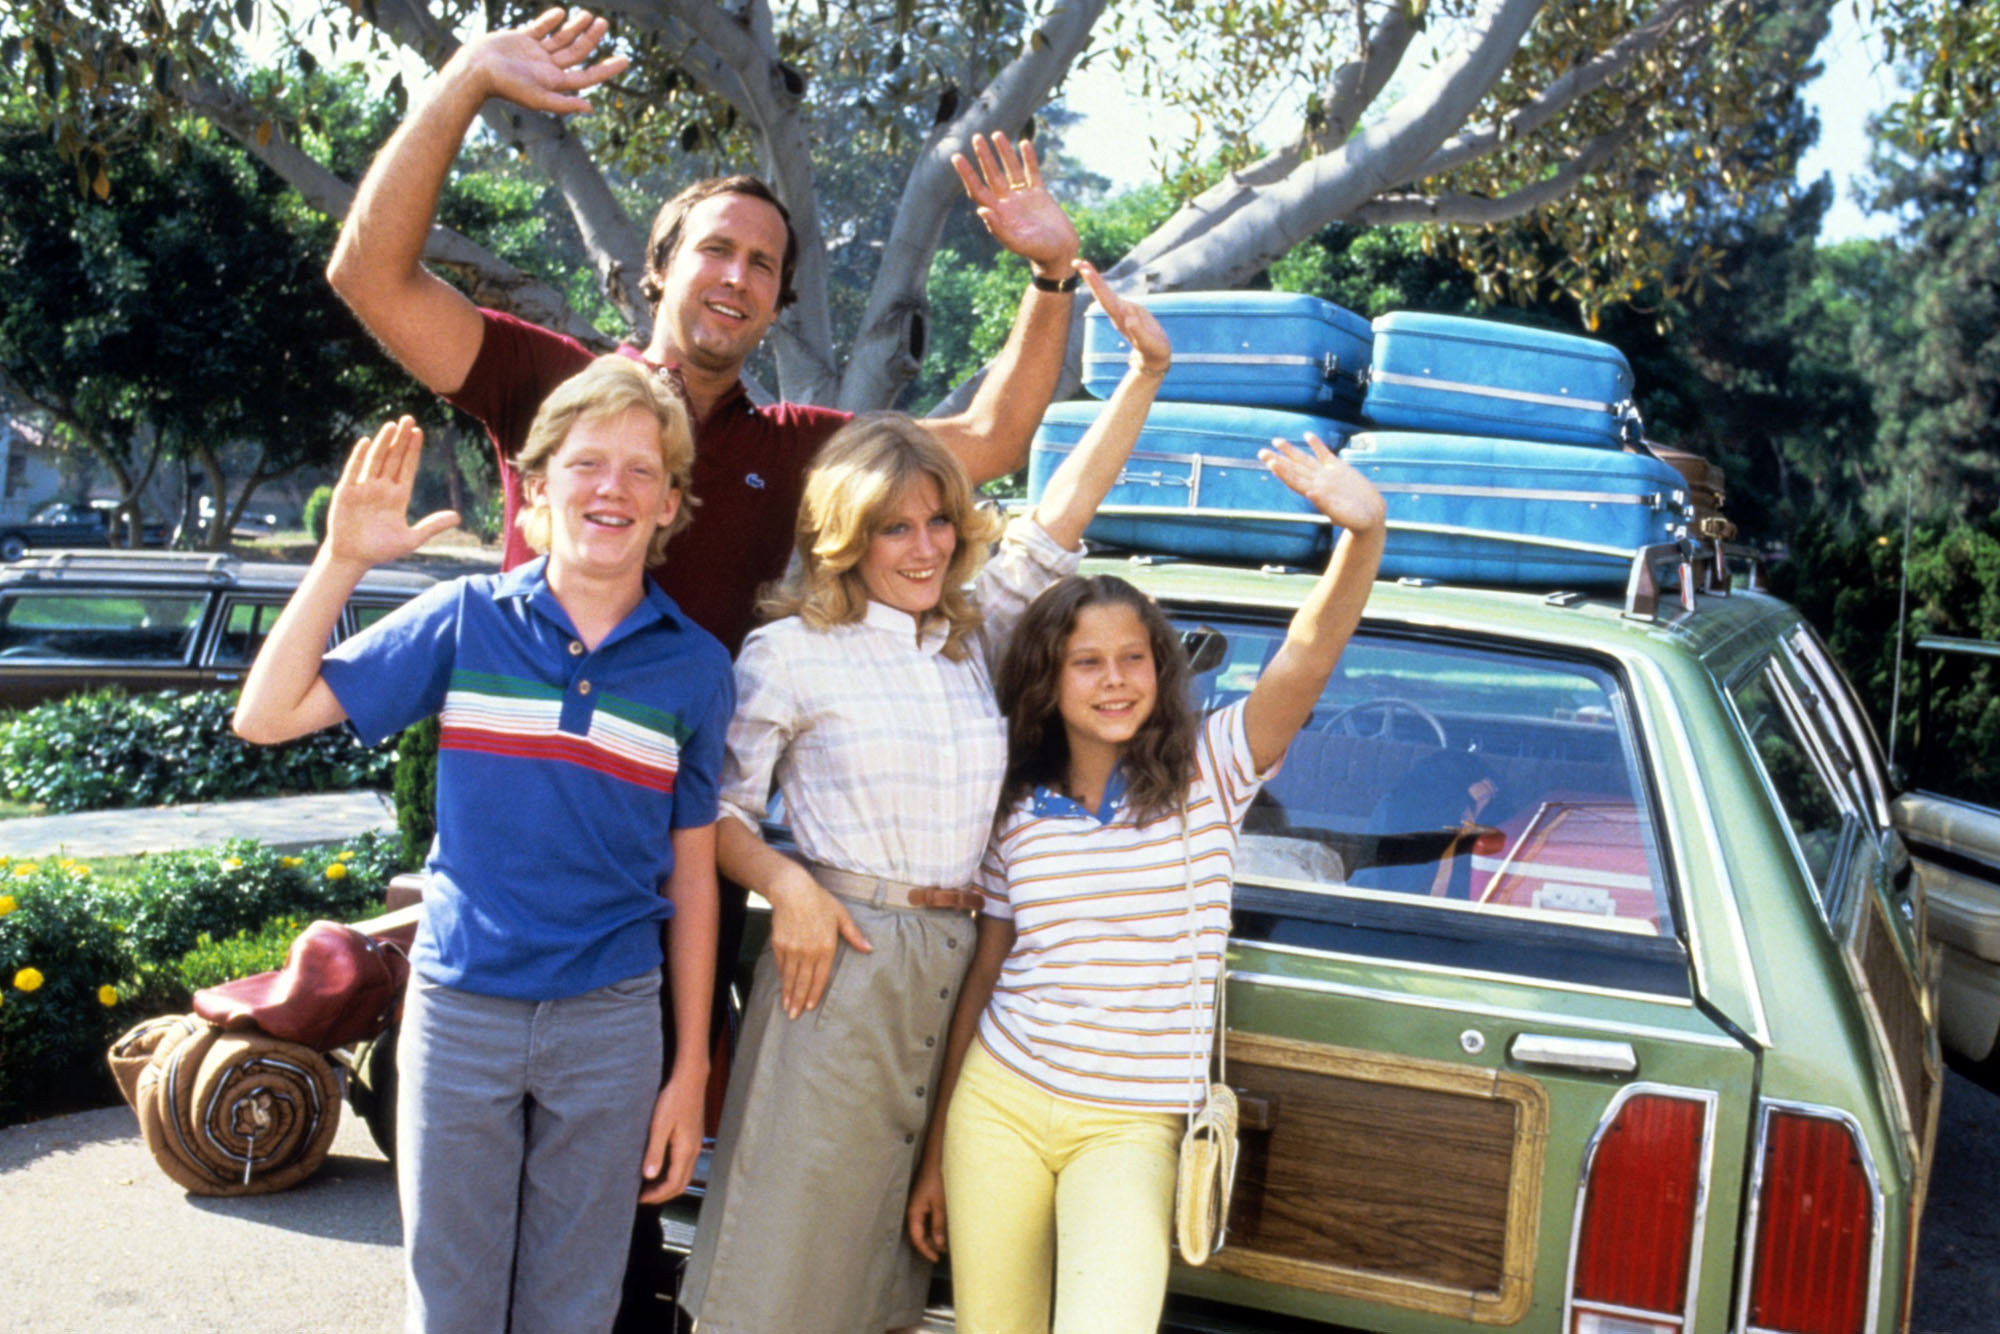 Source: MovieFone.net  The family gearing up for a day trip to the Aquarium.